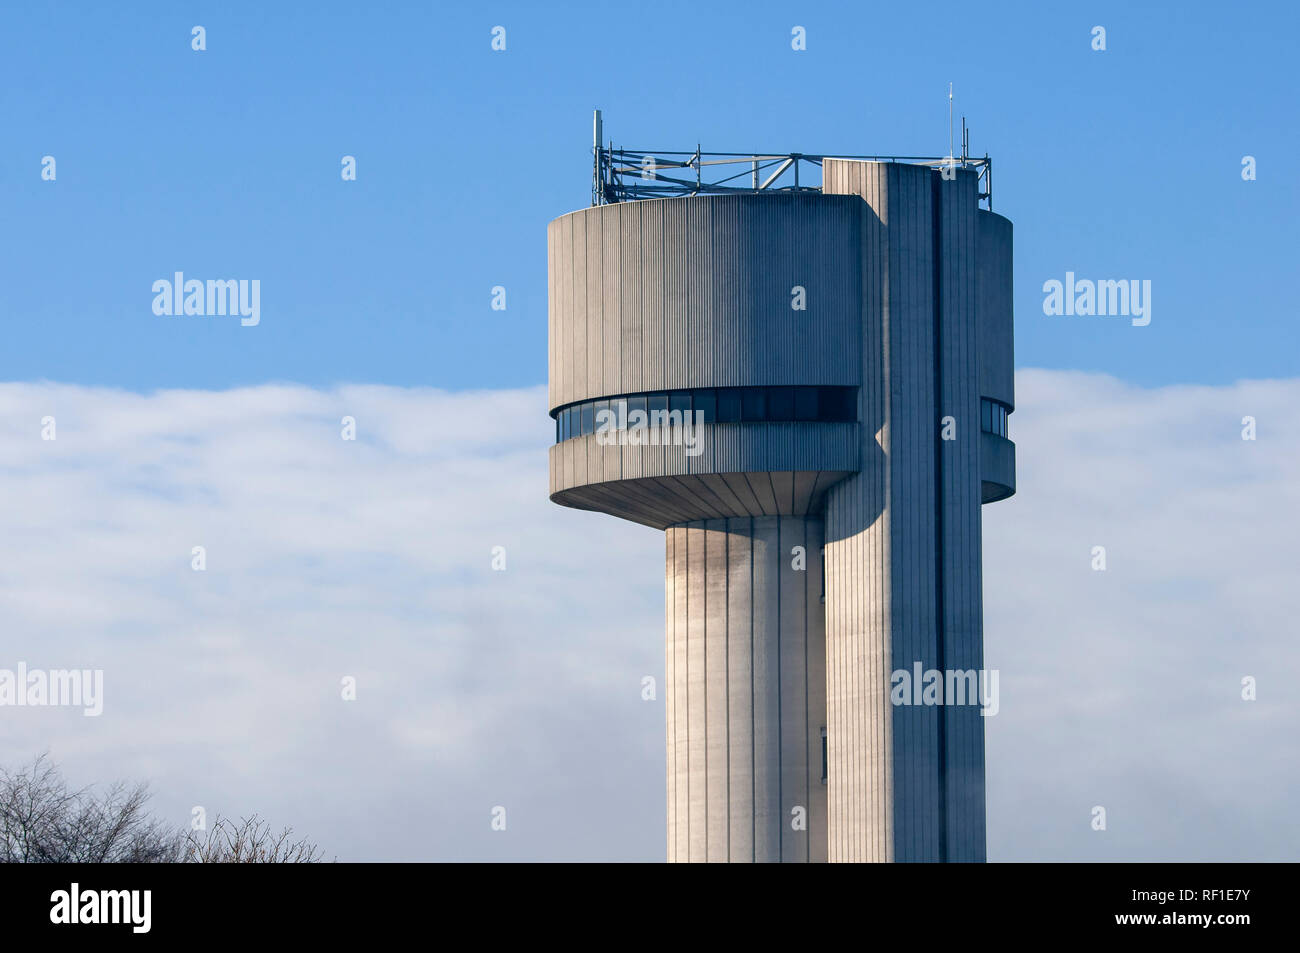 Sci-Tech Whitchurch tower, Photo Stock